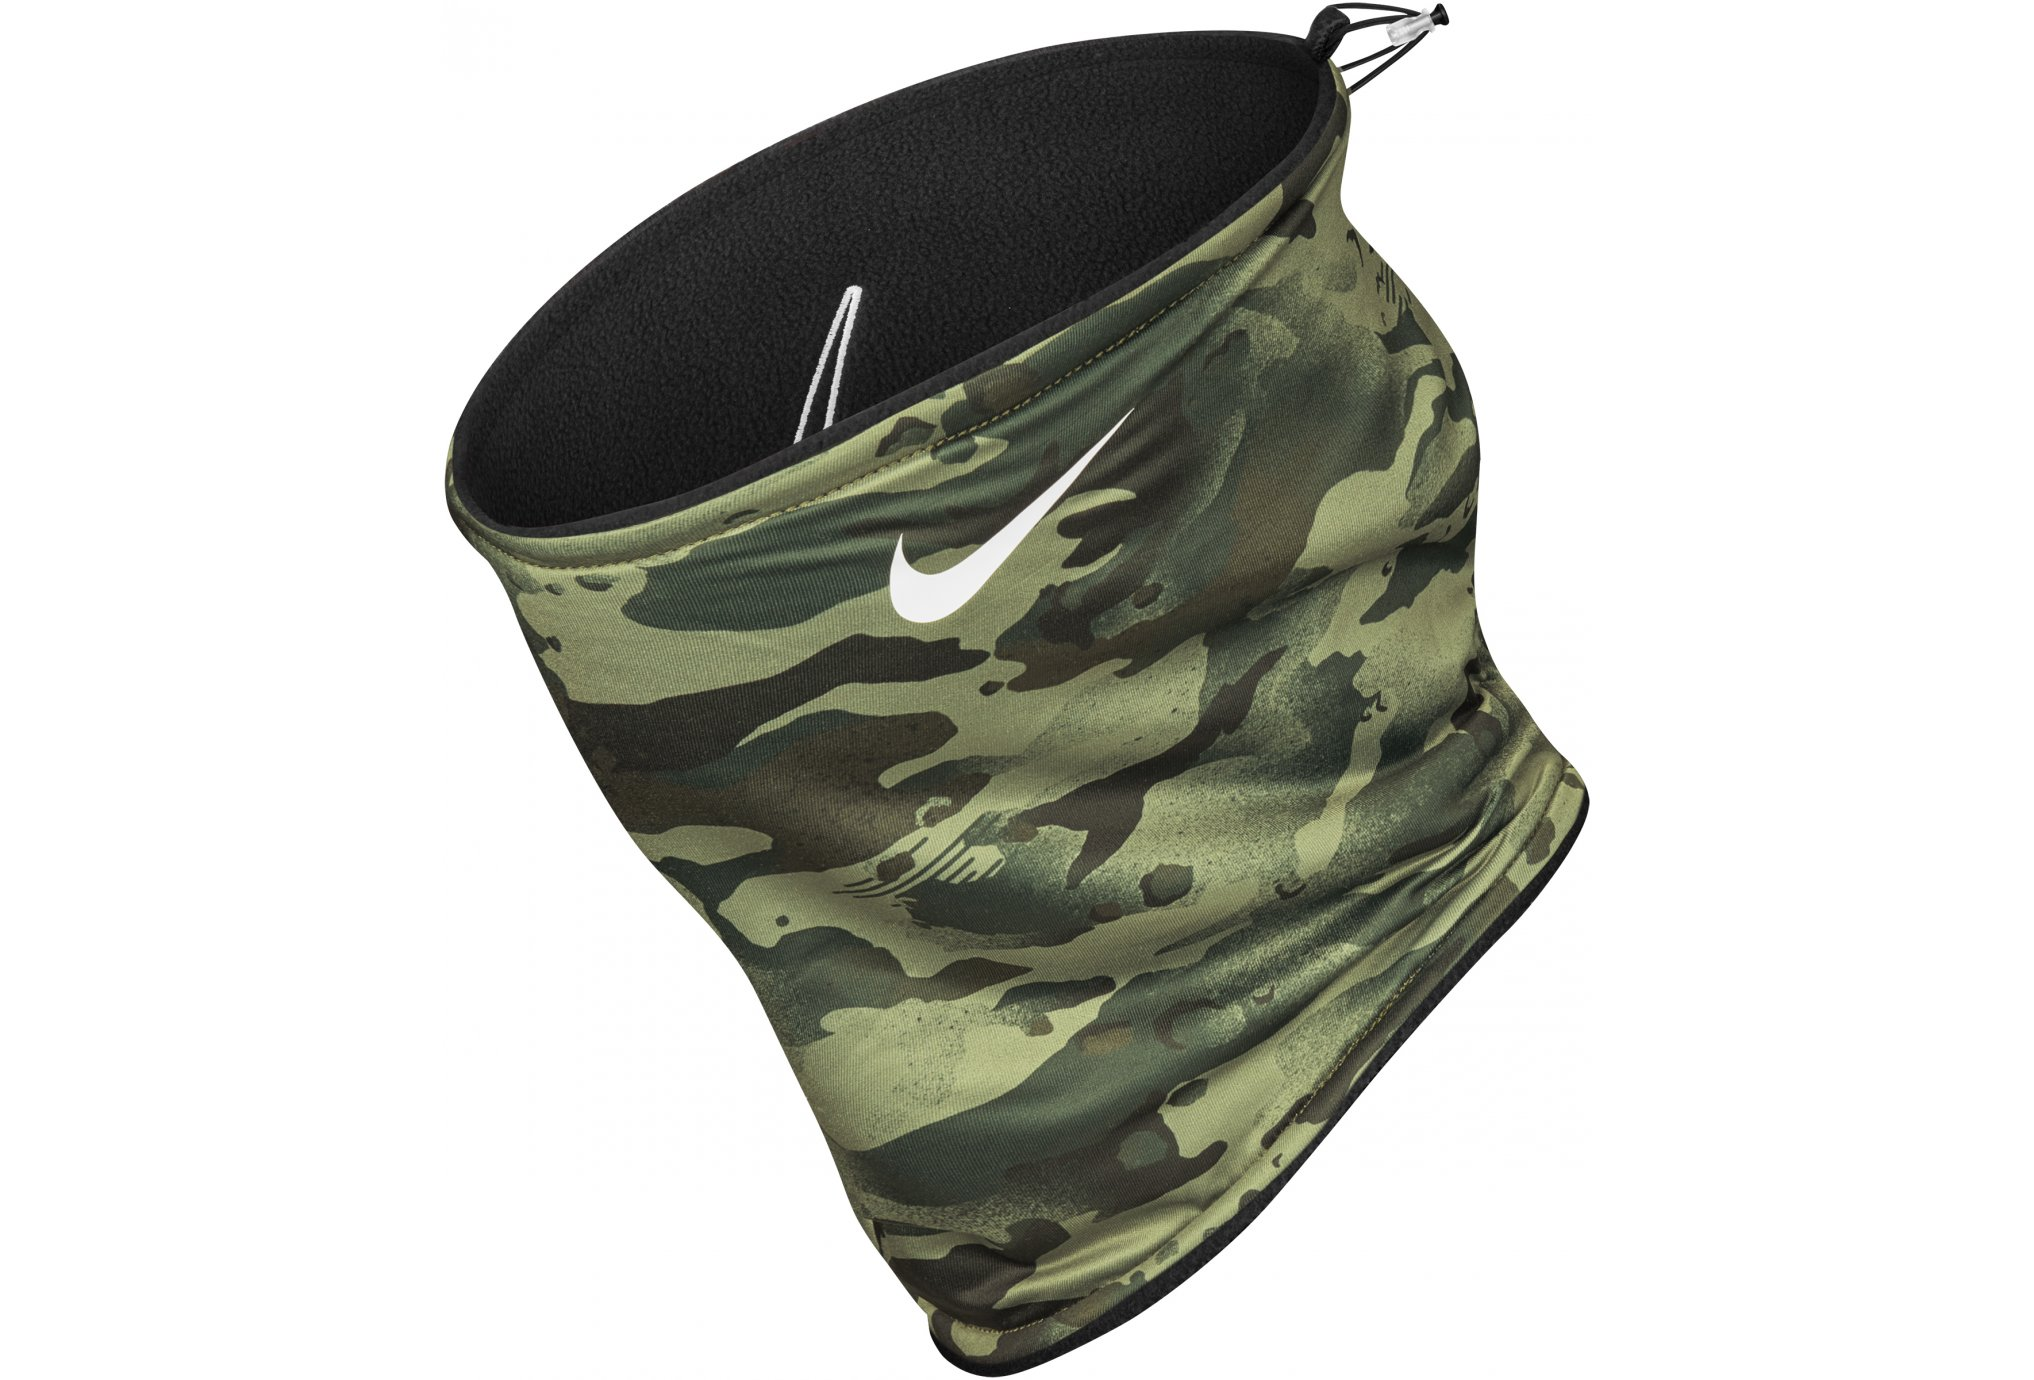 Nike Reversible Neck Warmer 2.0 Tours de cou